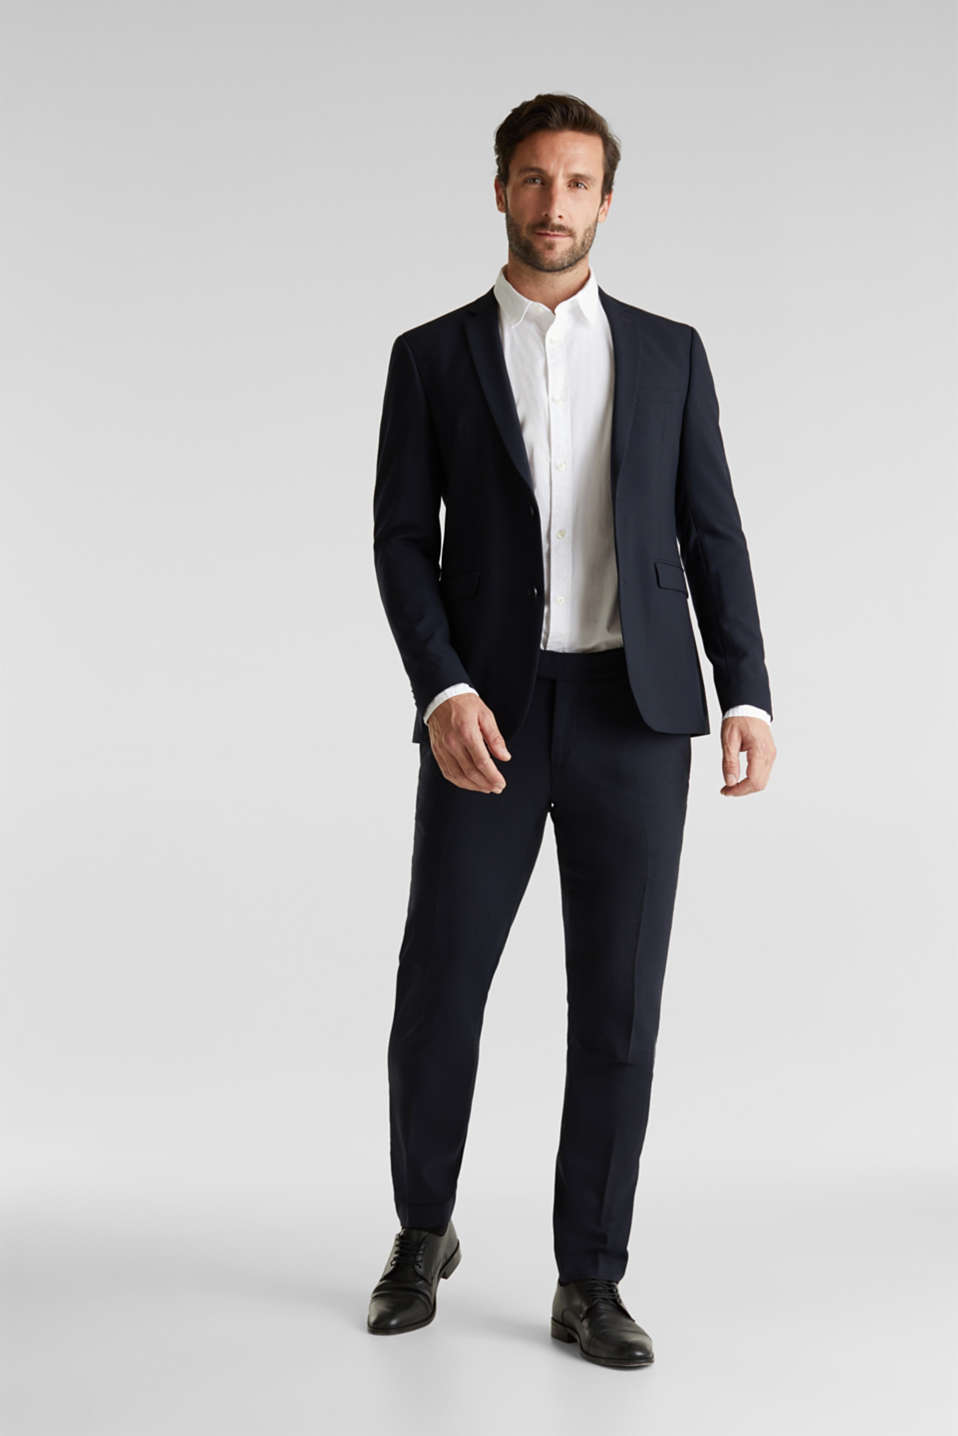 ACTIVE SUIT tailored jacket, wool blend, DARK BLUE, detail image number 1